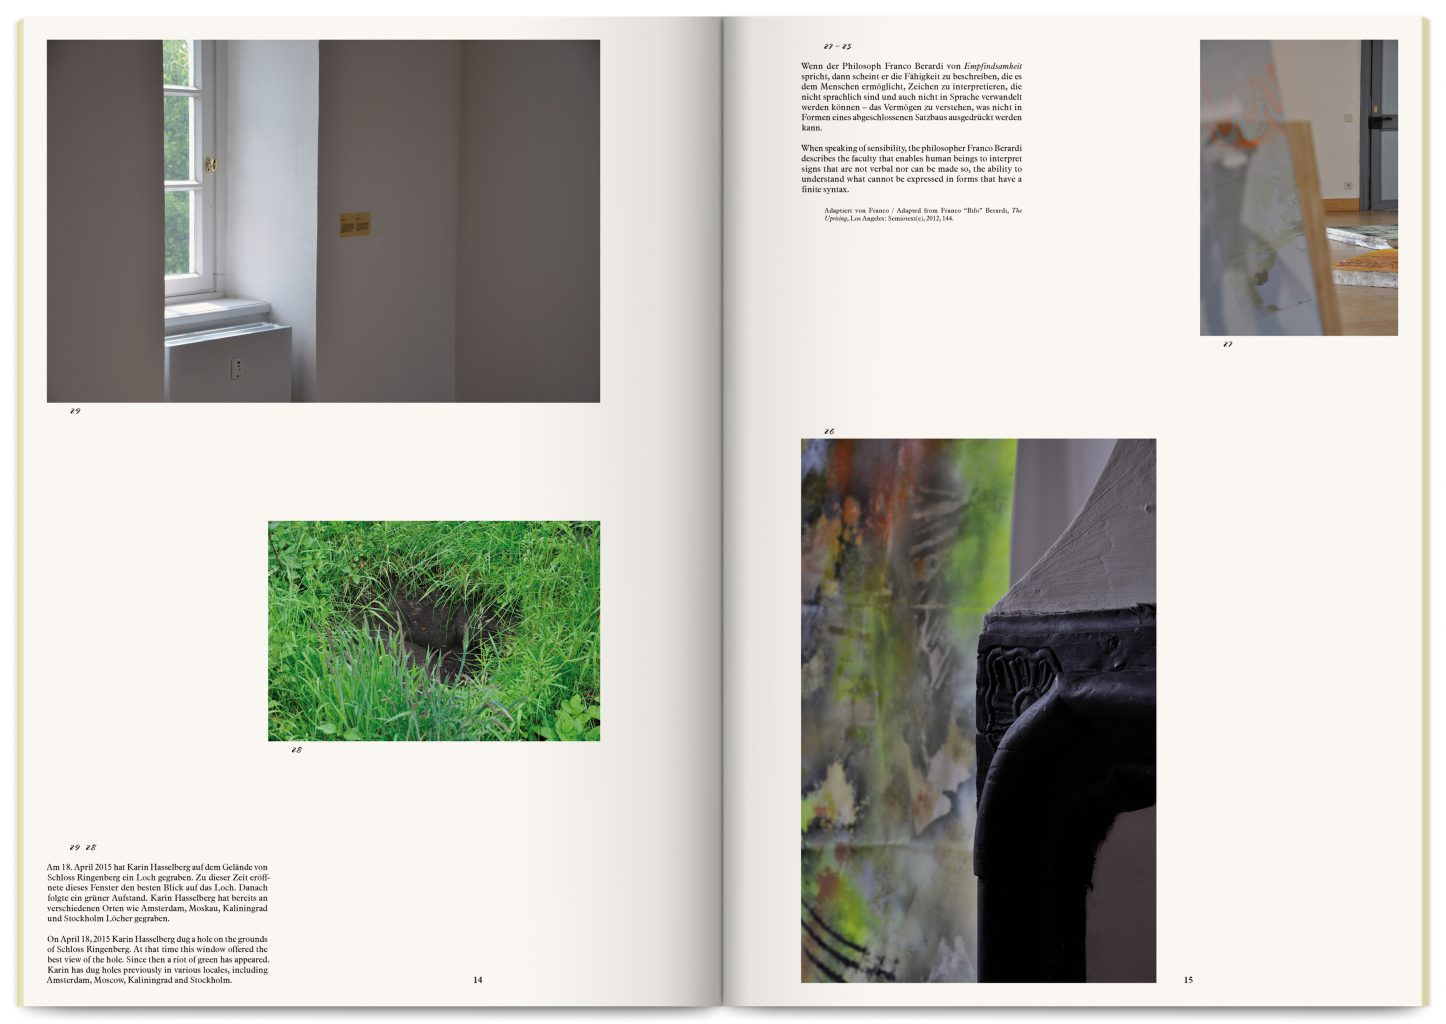 Publication and printed matter for Neither Here Nor There, Neither Fish Nor Fowl exhibition curated by Antonia Lotz, Angela Jerardi at Schloss Ringenberg, MGK Siegen, Ringenberg, designed by In the shade of a tree studio, founded by Sophie Demay and Maël Fournier Comte.